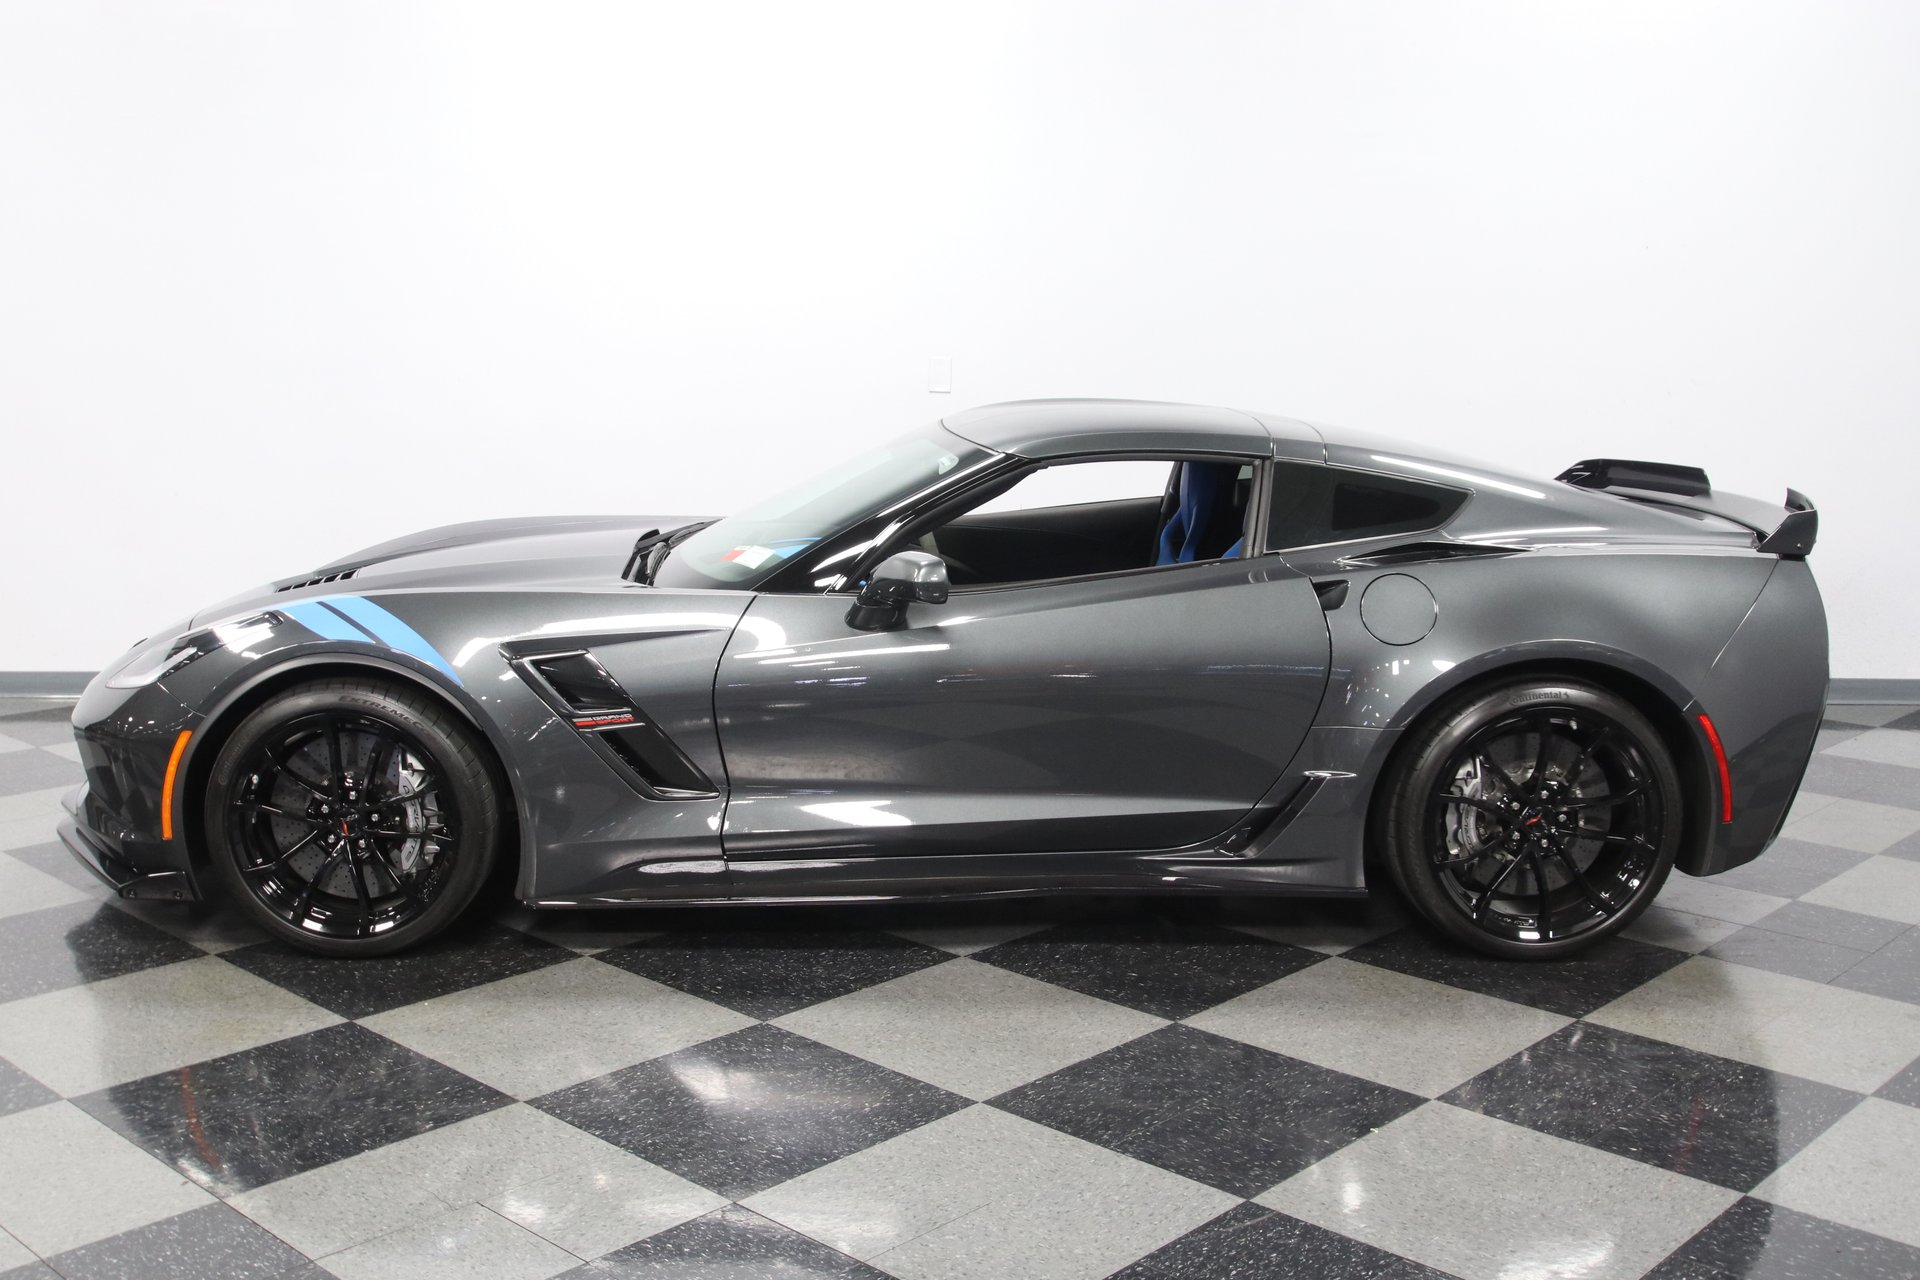 2017 chevrolet corvette grand sport 3lt collectors edition